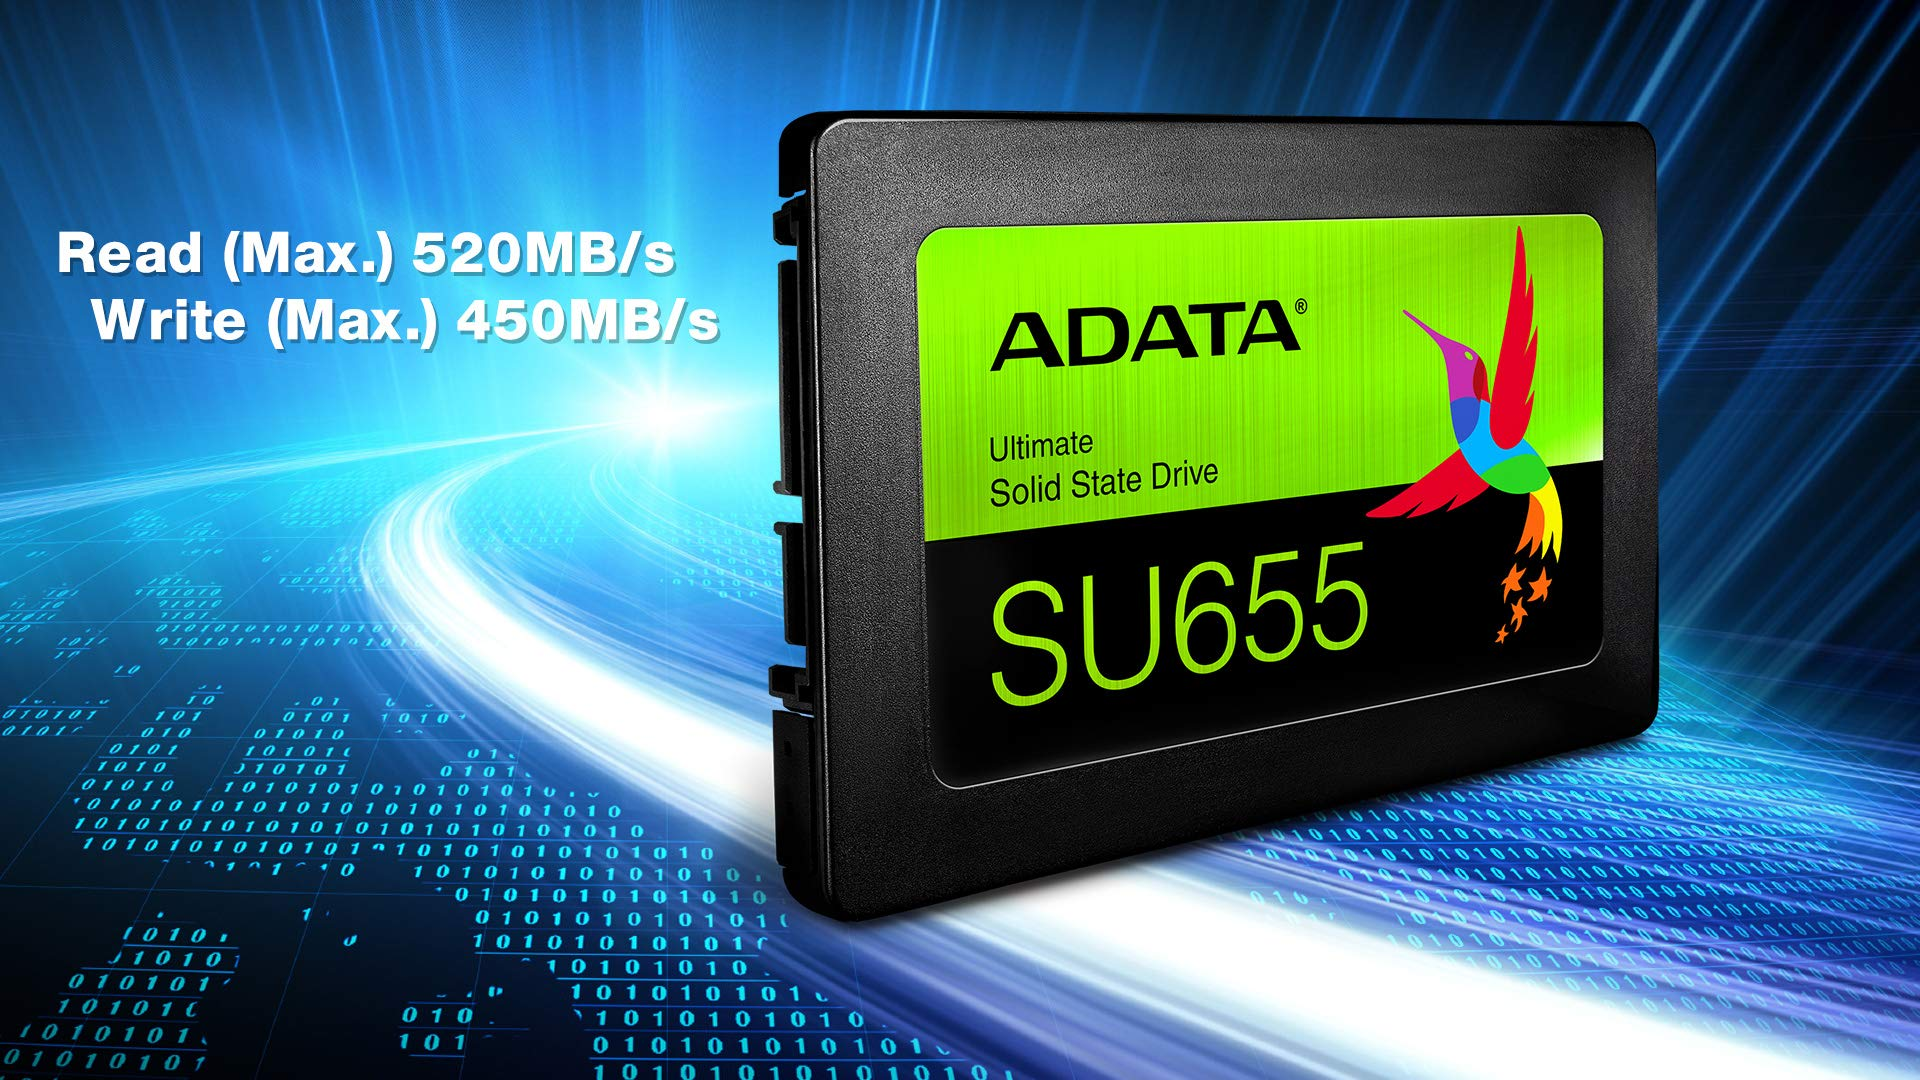 ADATA SU655 960GB 3D NAND 2.5 Inch SATA III High Speed Read Up to 520MB/S Internal SSD (ASU655SS-960GT-C) by ADATA (Image #5)